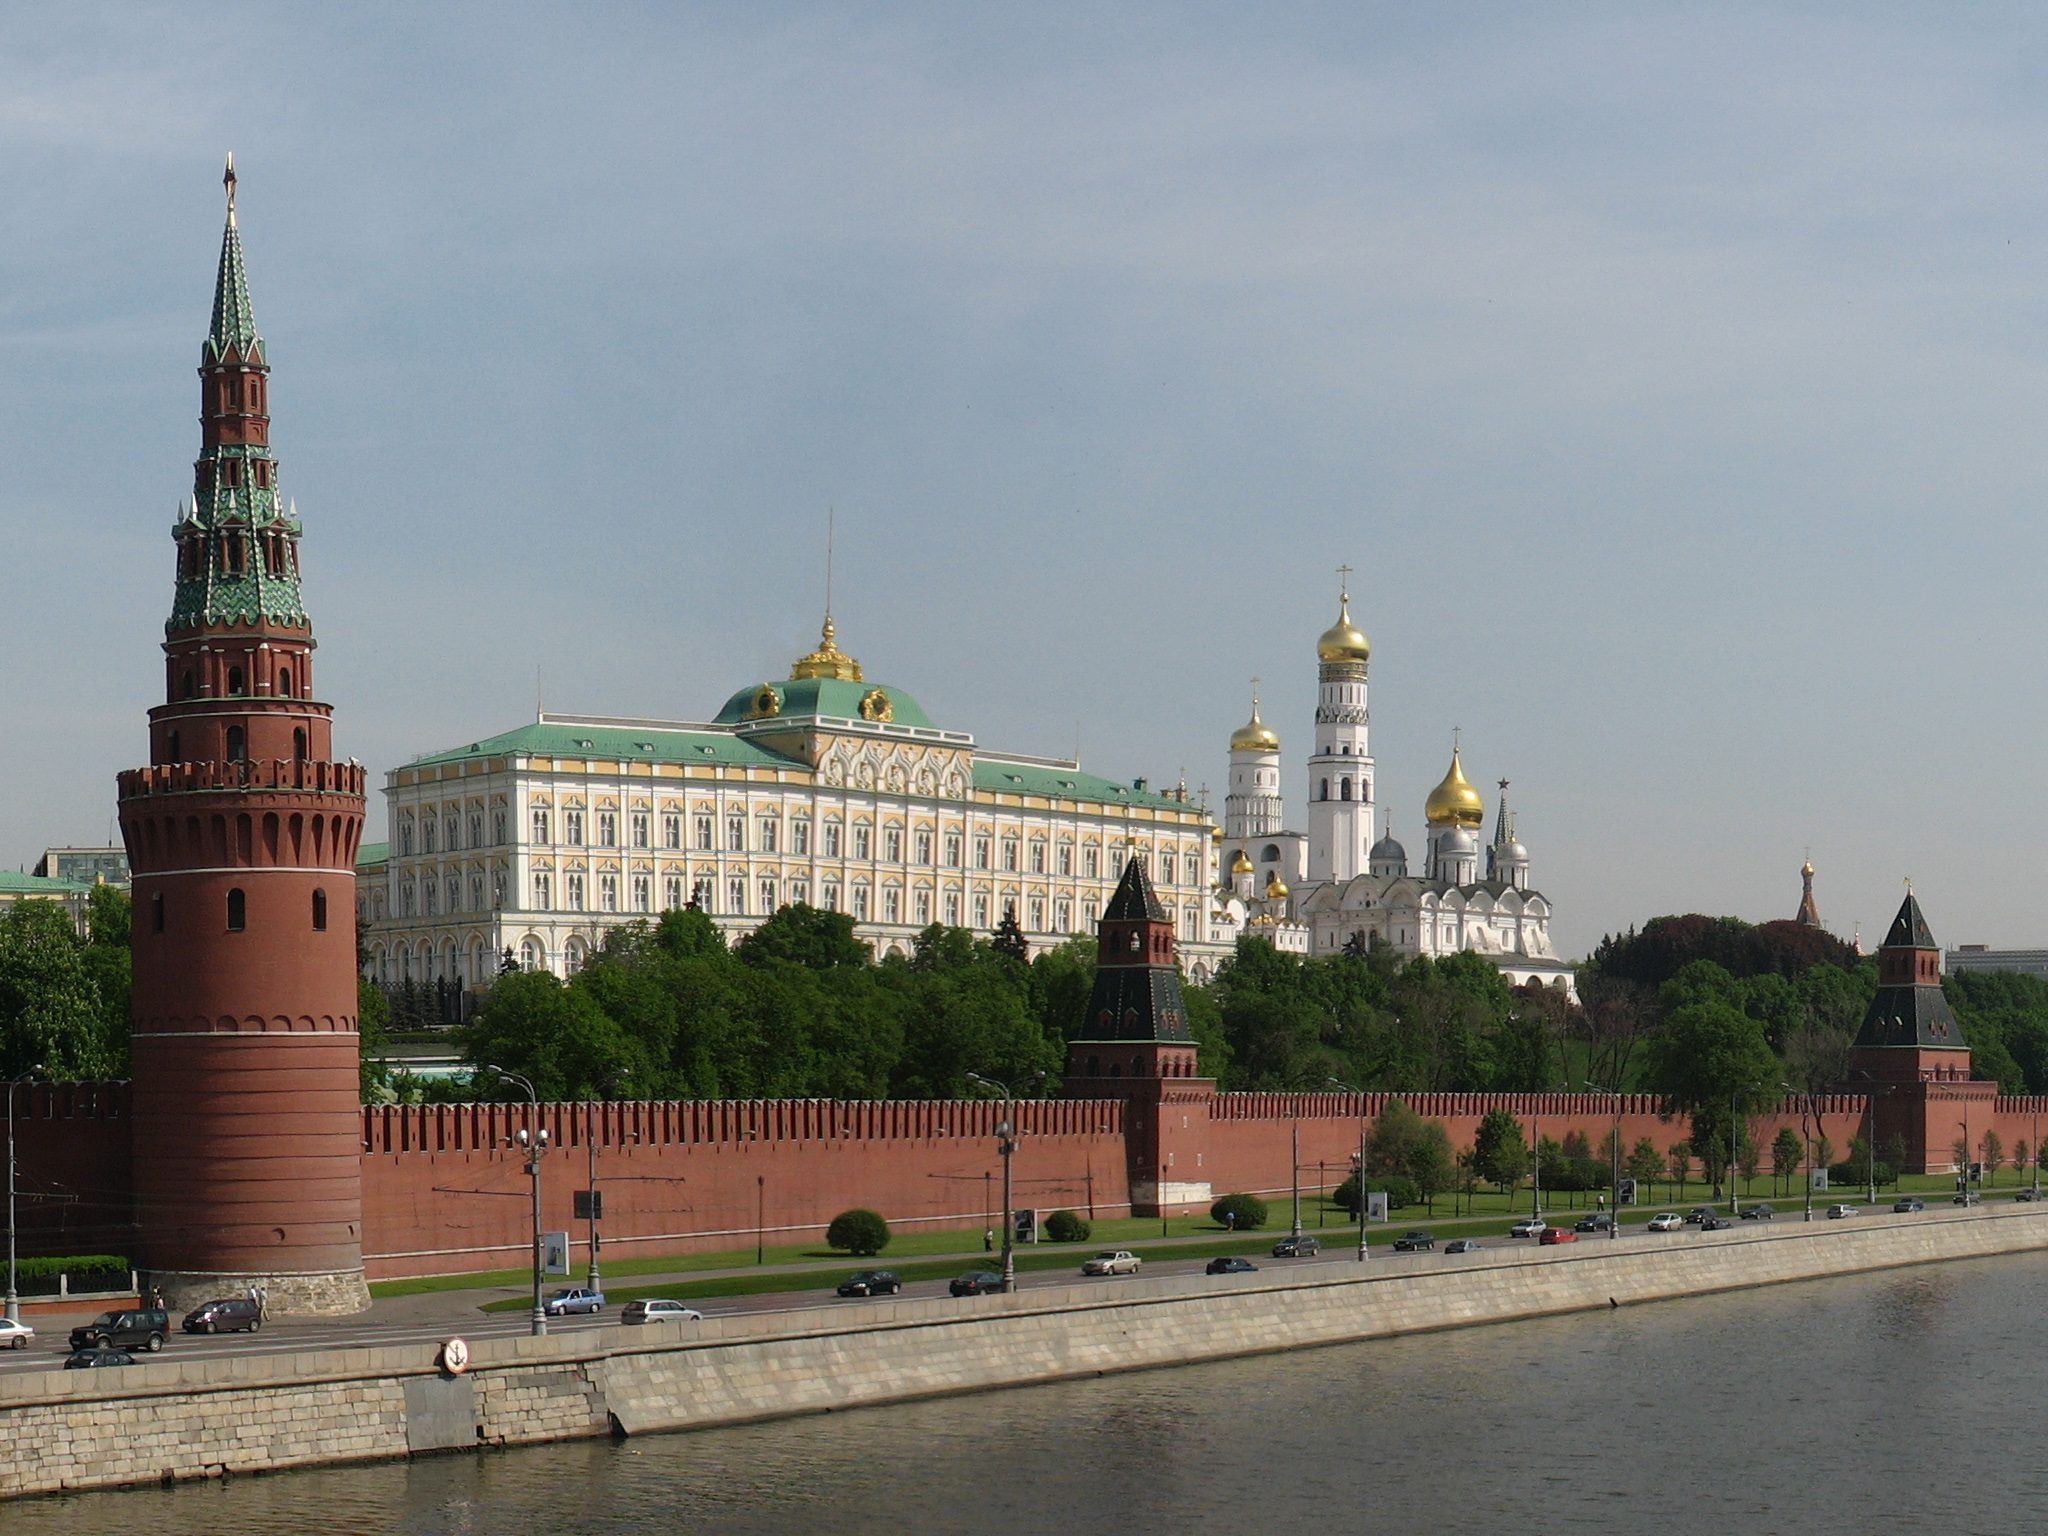 Moscow Kremlin from Bolshoi Kamenny bridge. Photo by Минеева Ю.